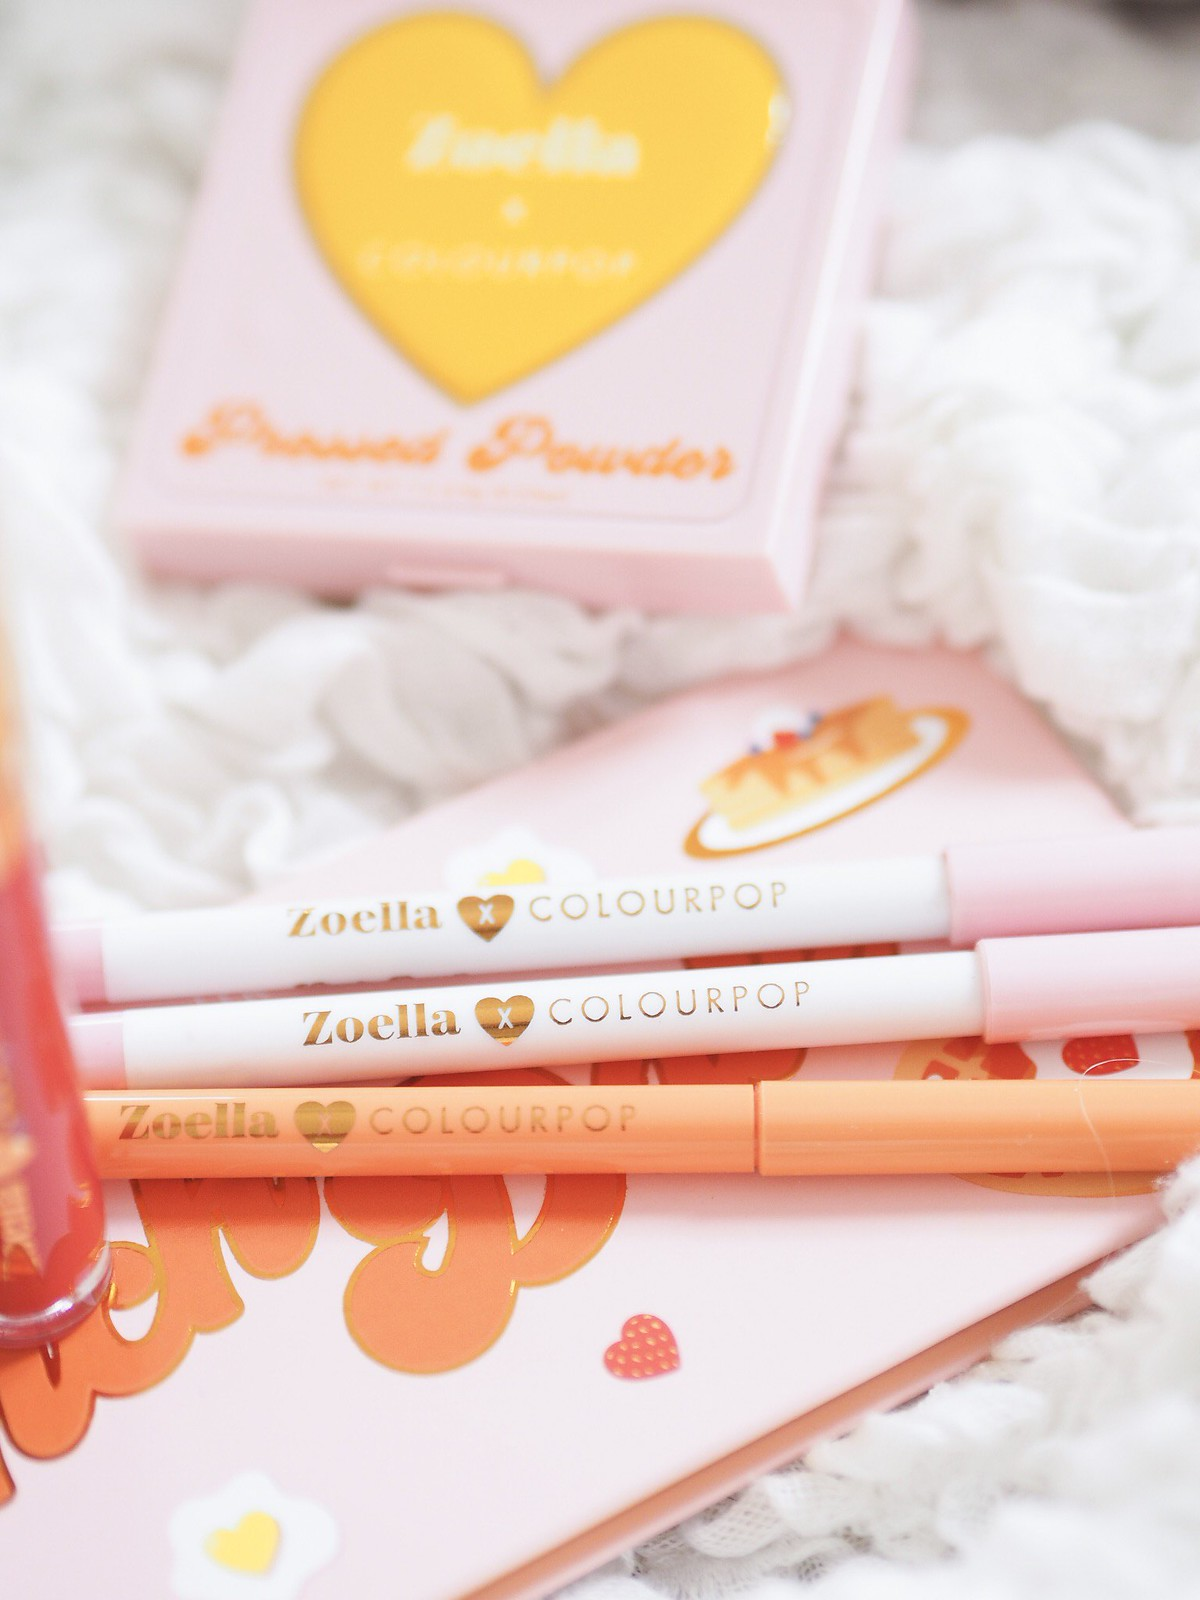 zoella x colourpop make up